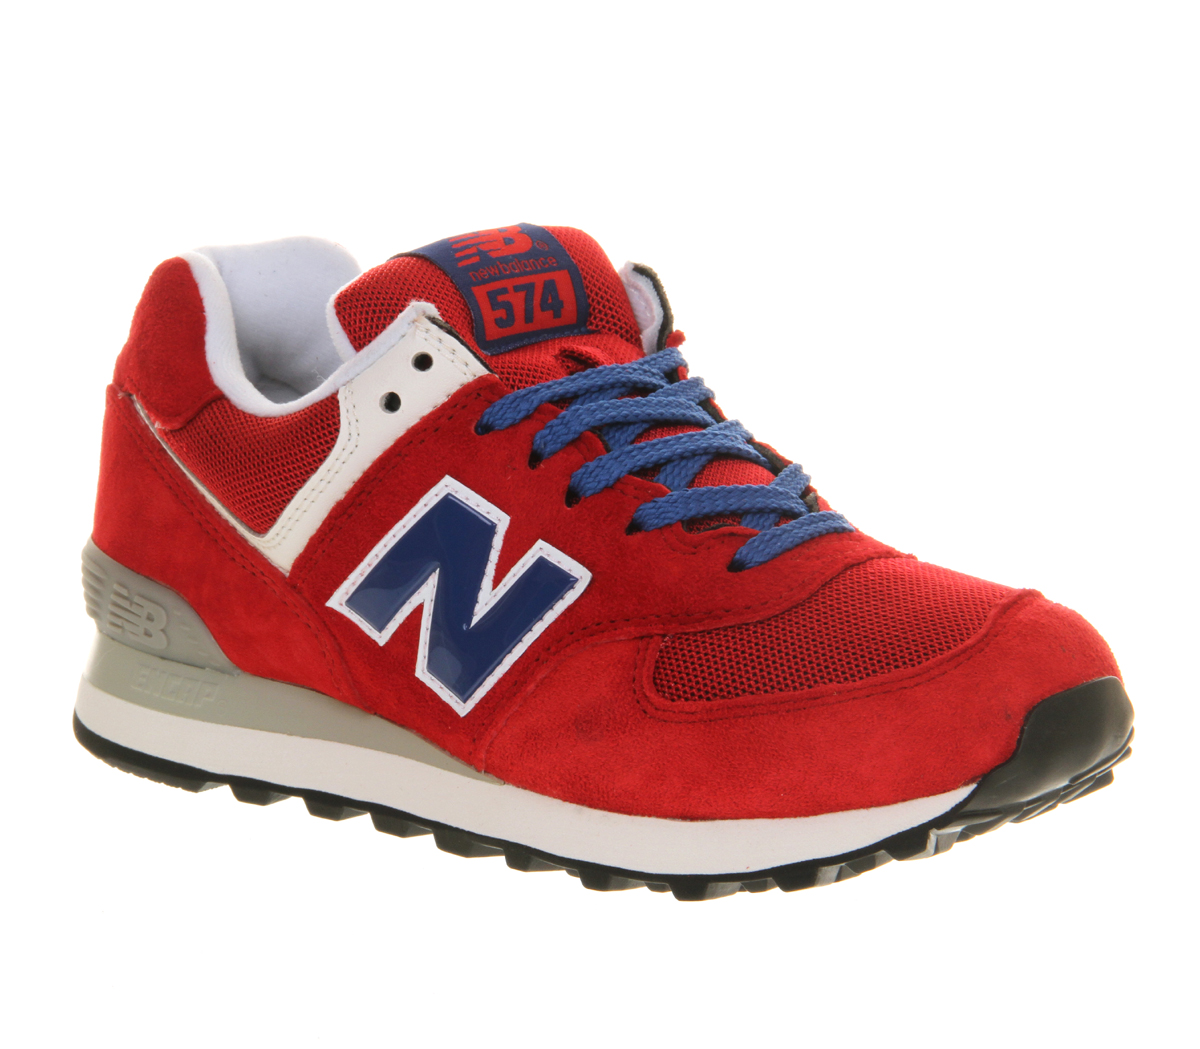 new balance new balance m574 red blue exclusive trainers shoes ebay. Black Bedroom Furniture Sets. Home Design Ideas